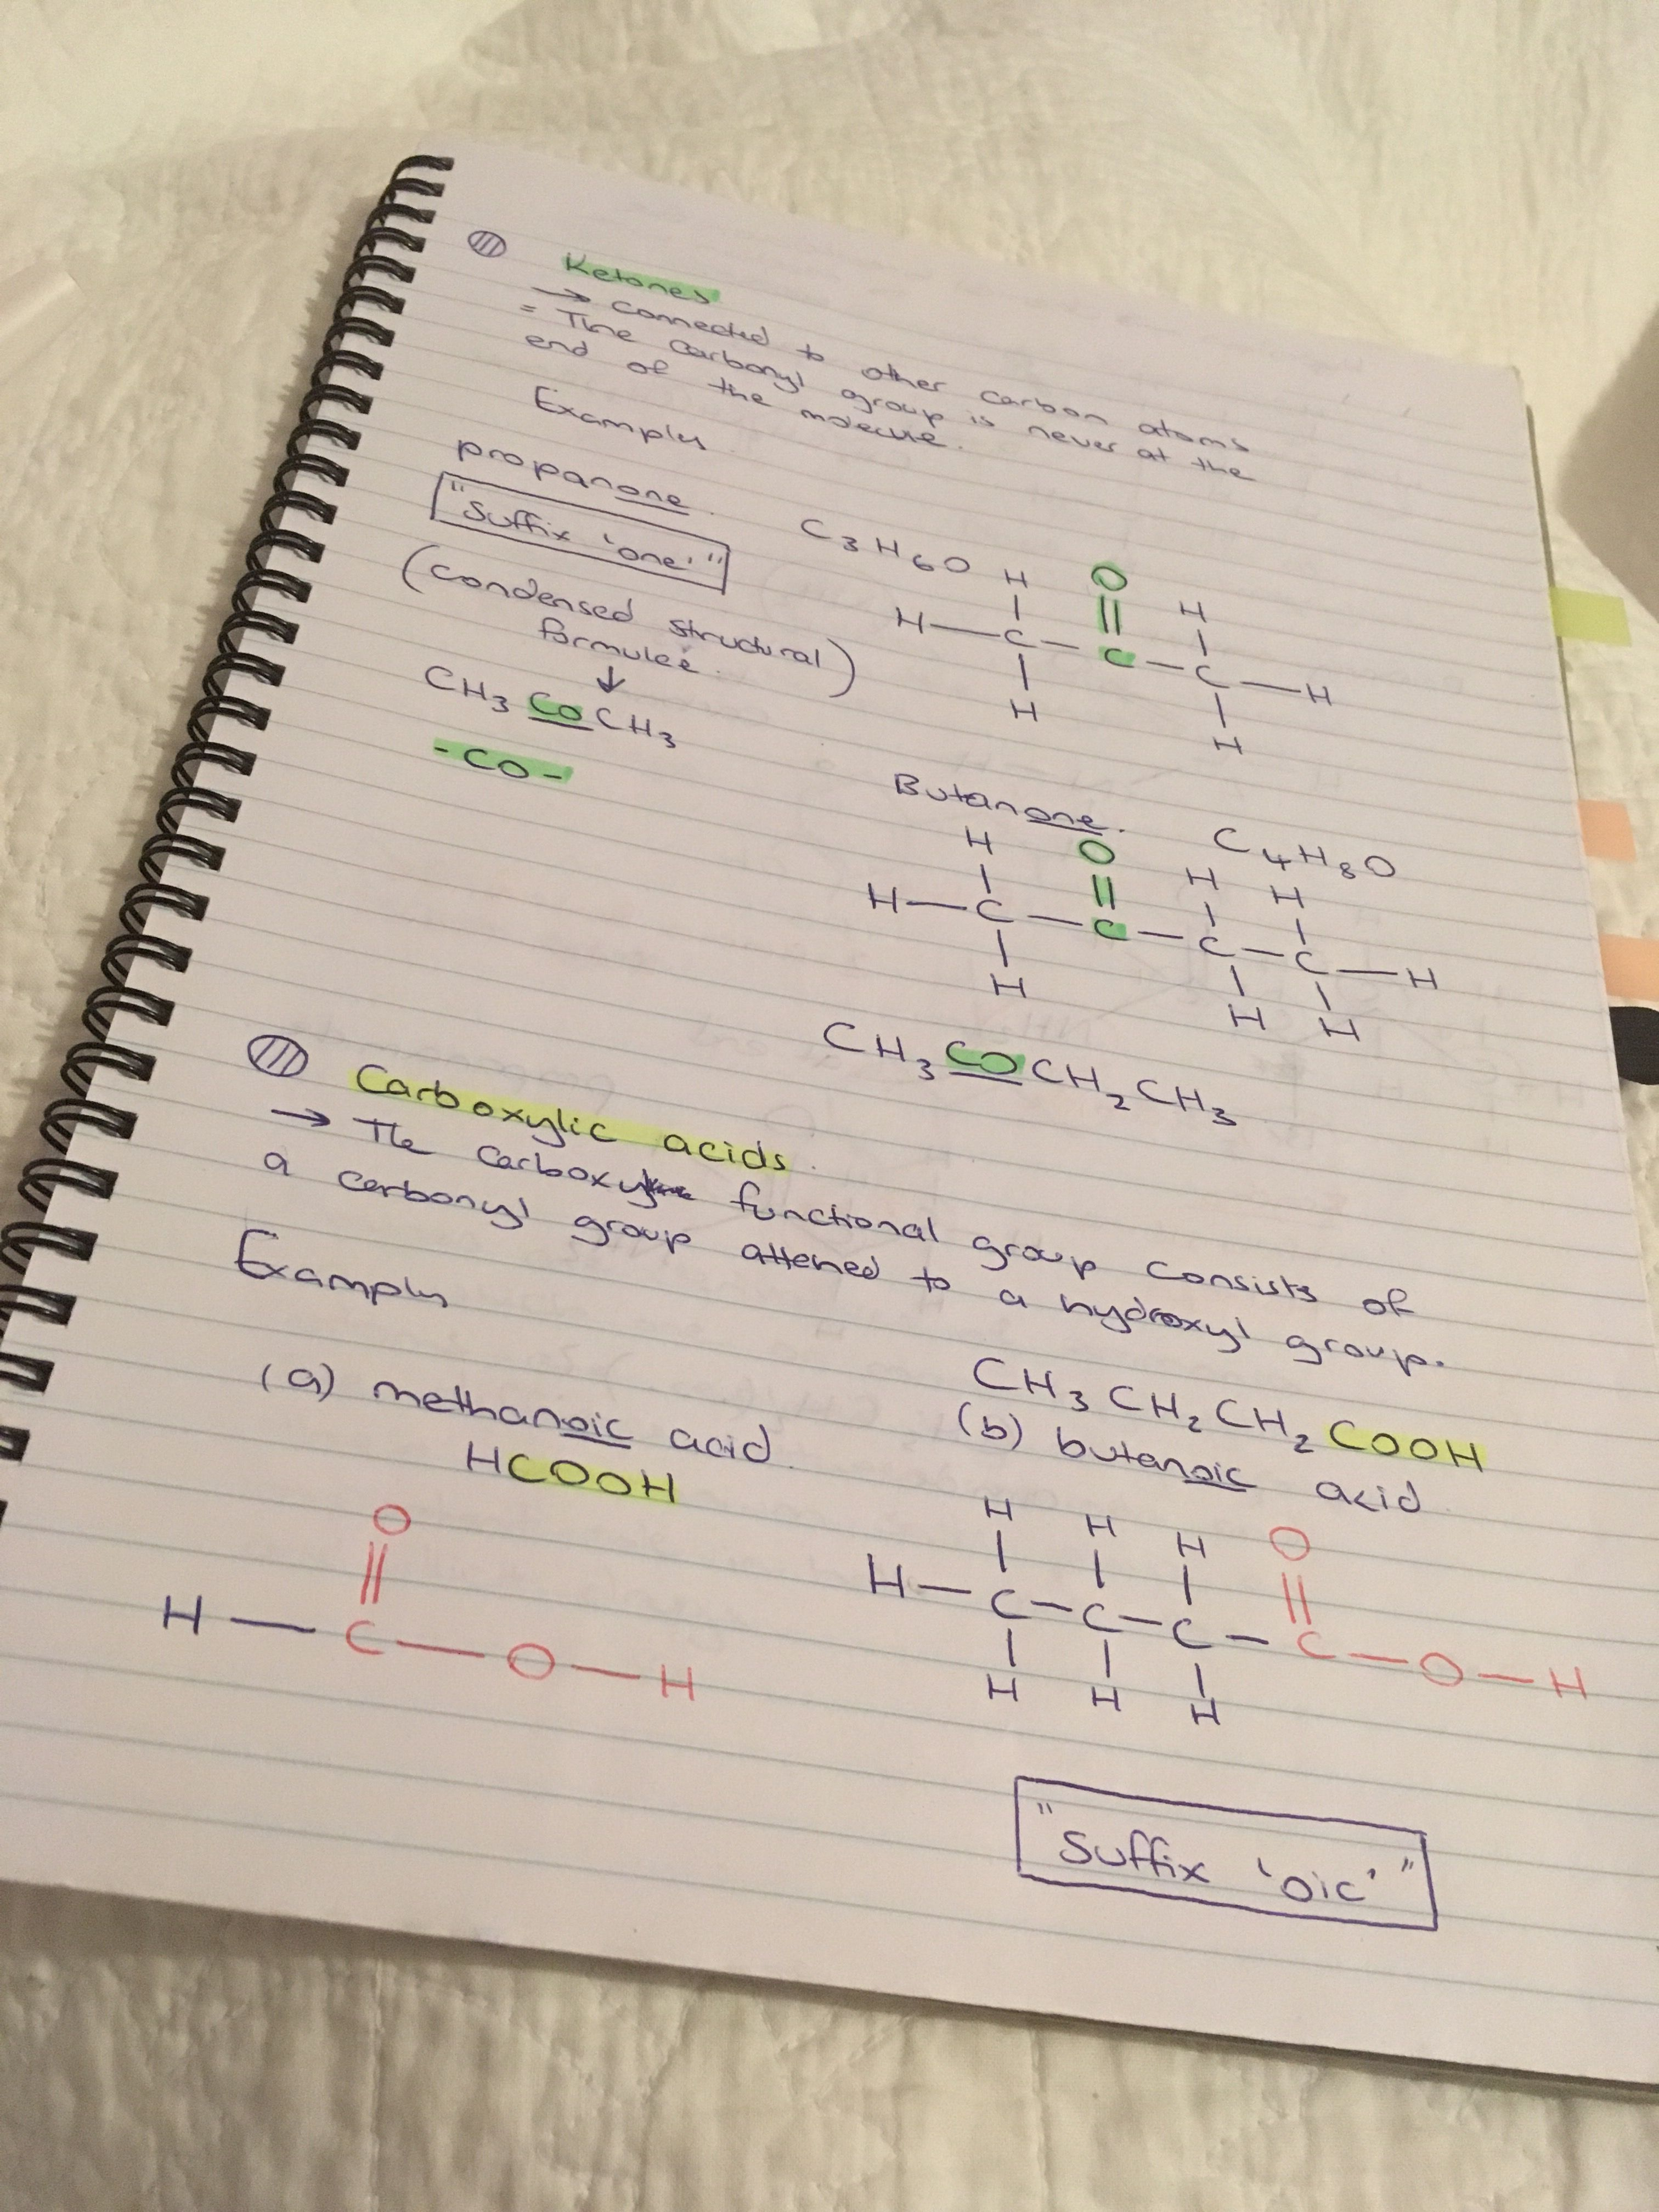 Ketones + intro to carboxylic acids Pbs learning media